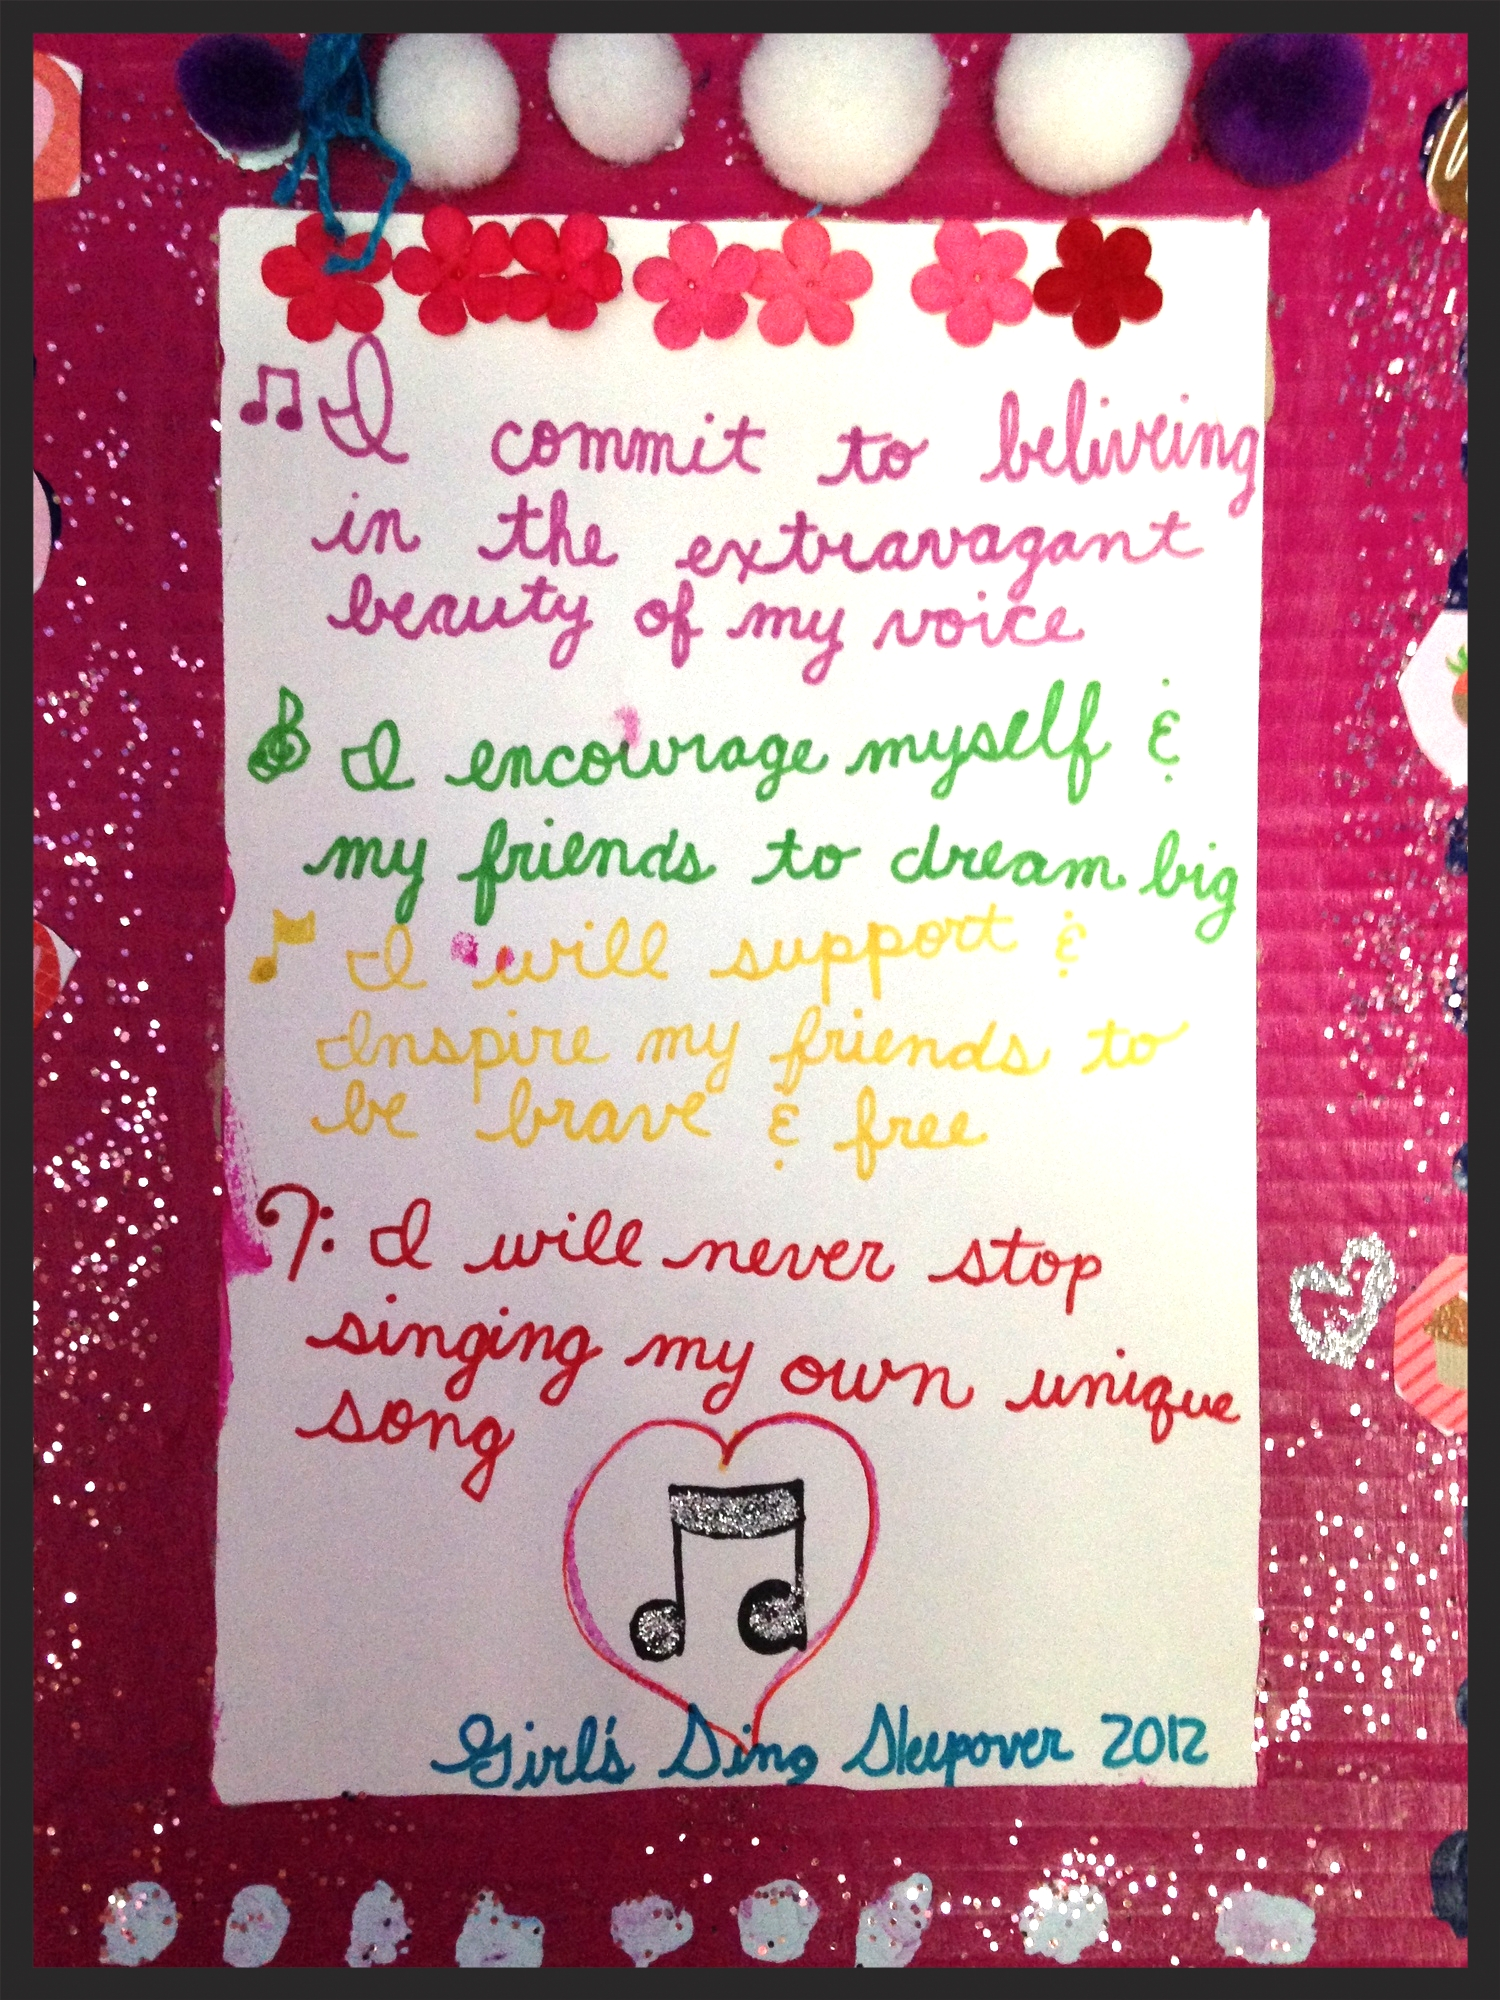 Our Creed, written by the Girls of Girls Up Loud